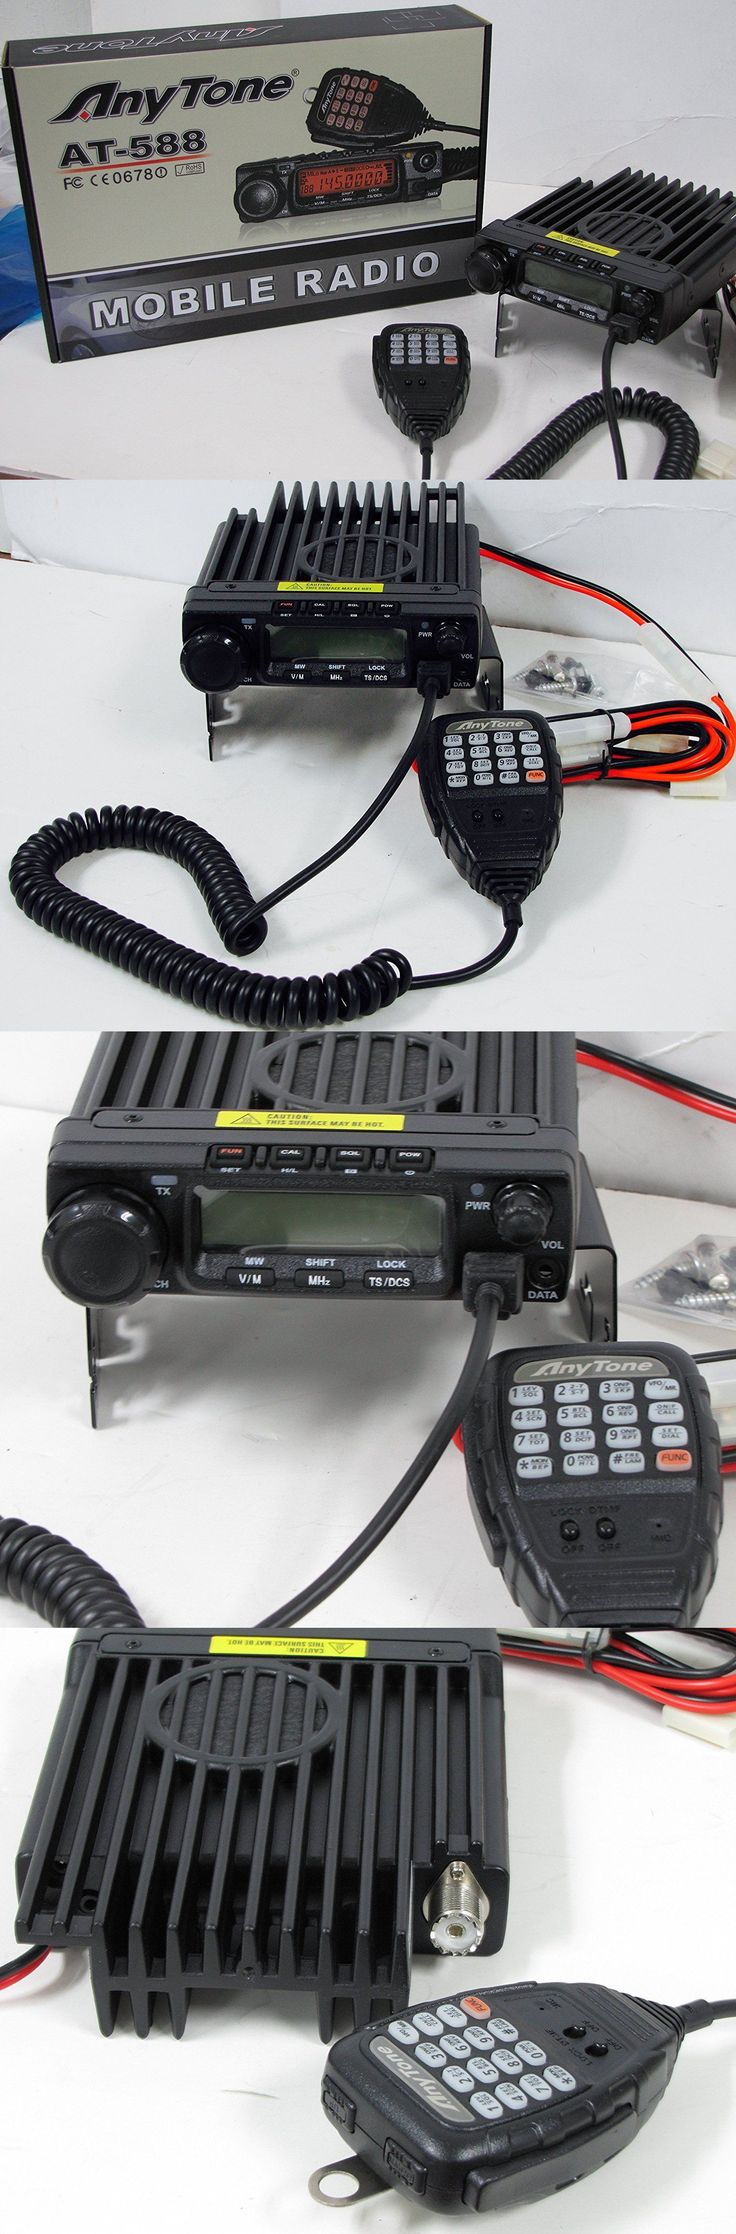 Ham Radio Transceivers: Anytone At-588 220Mhz Amateur Radio High Power Transceiver-Low Price/Free Ship BUY IT NOW ONLY: $149.0